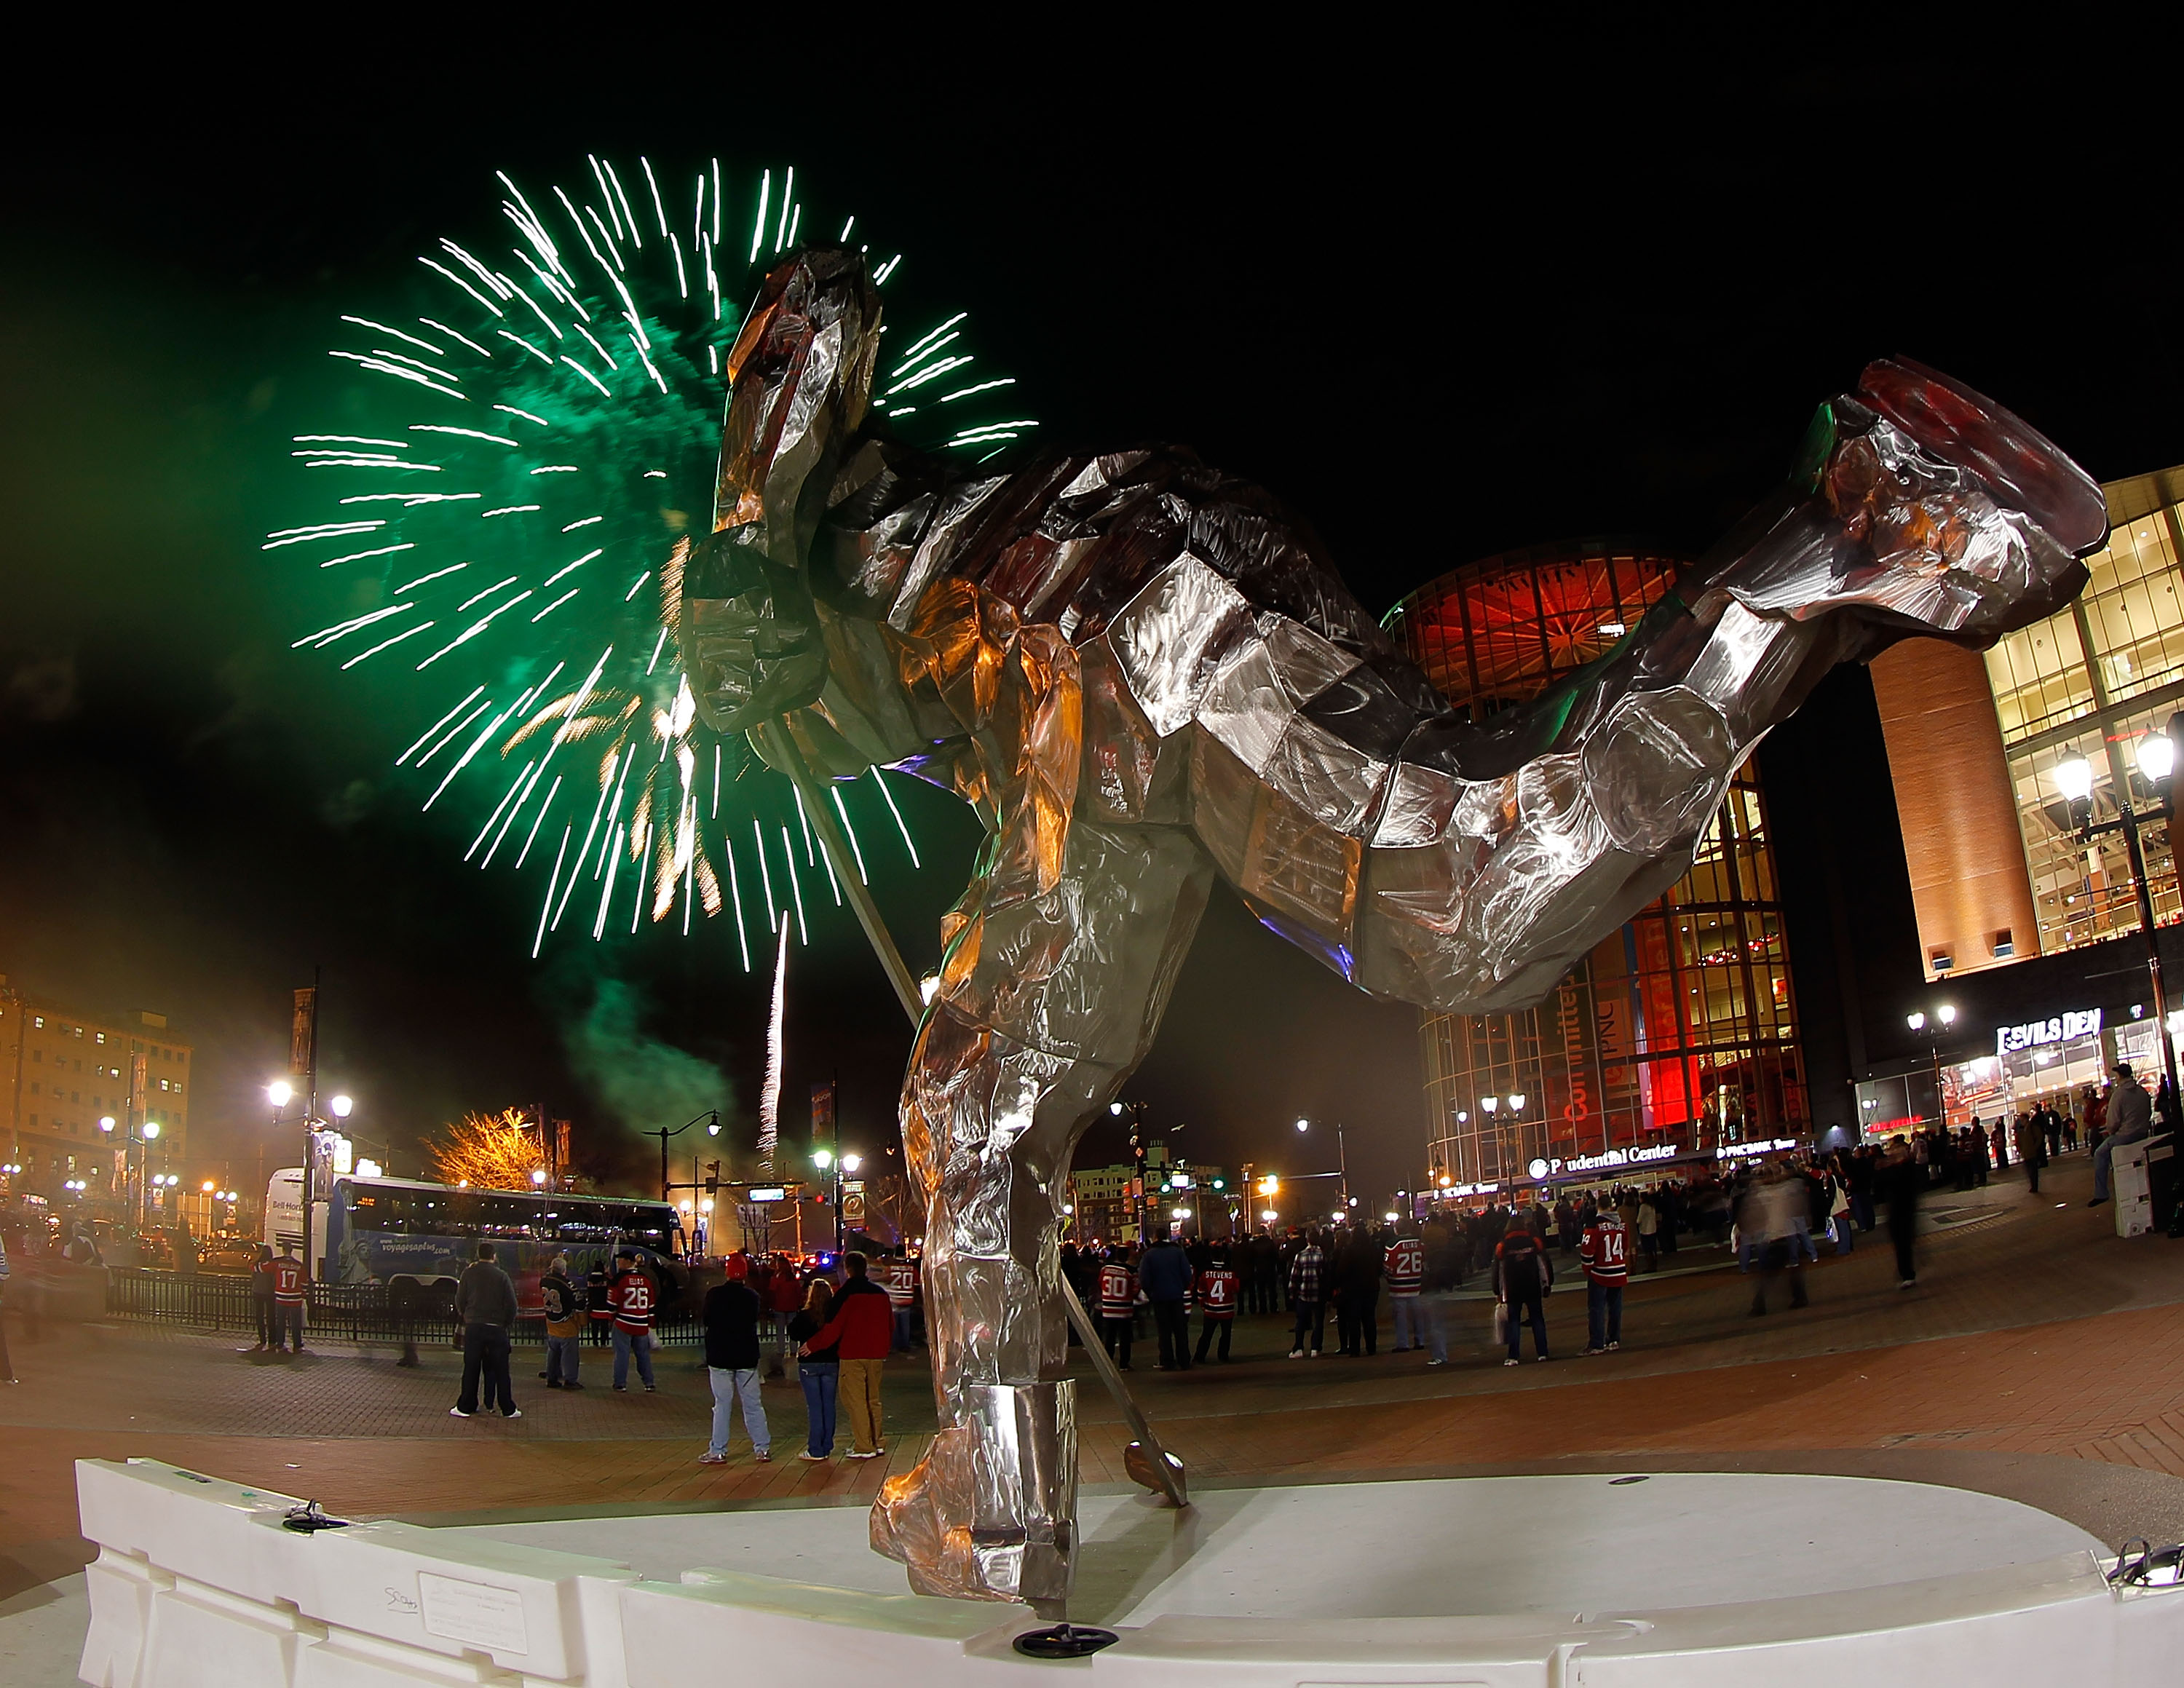 Nice statue. Nice fireworks. Shame about the attendance.